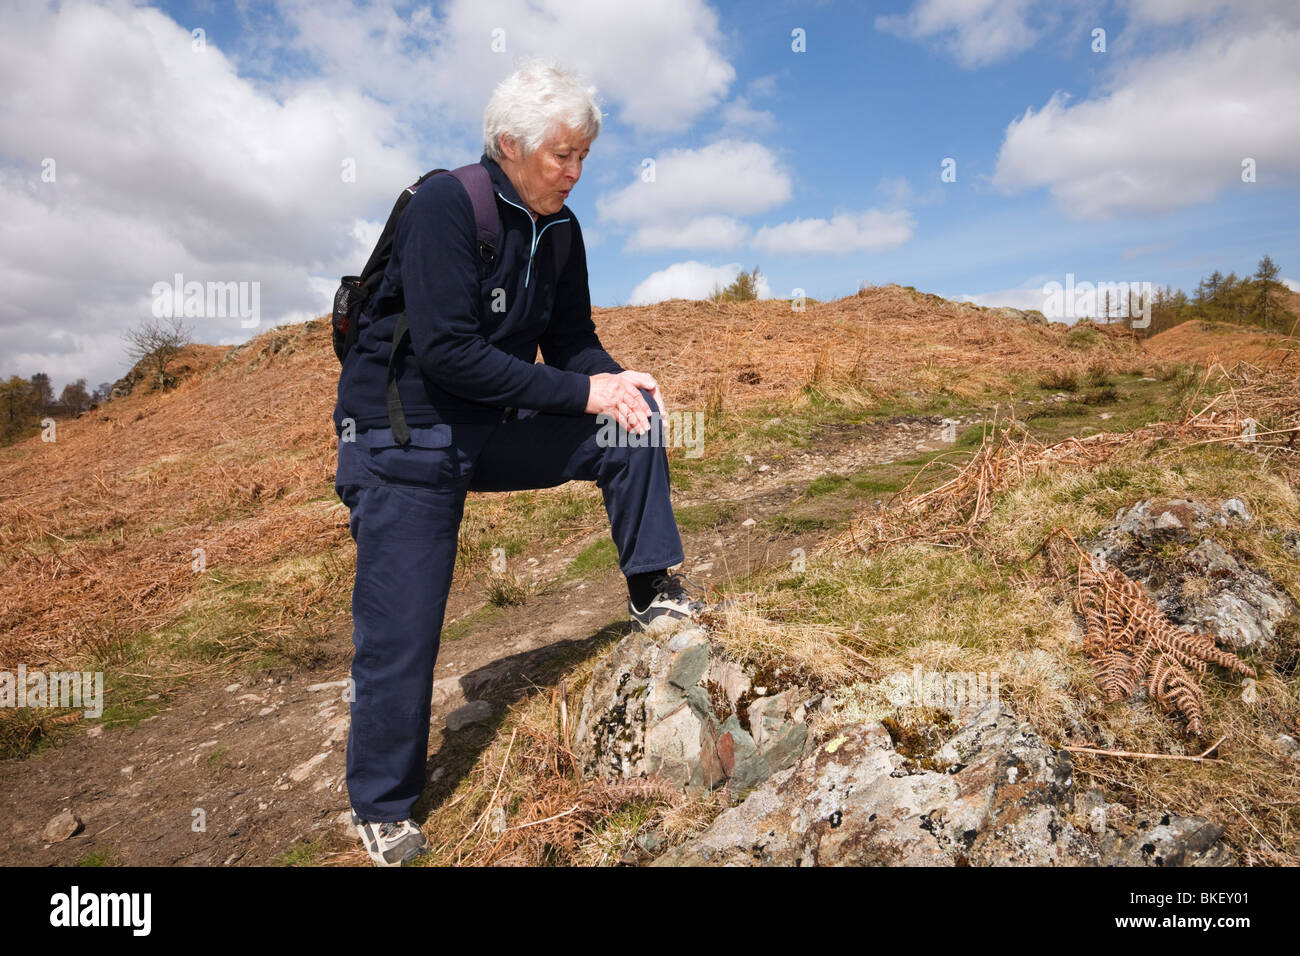 Senior woman walker rubbing a very sore knee after walking exercise. Cumbria, England, UK, Britain. - Stock Image